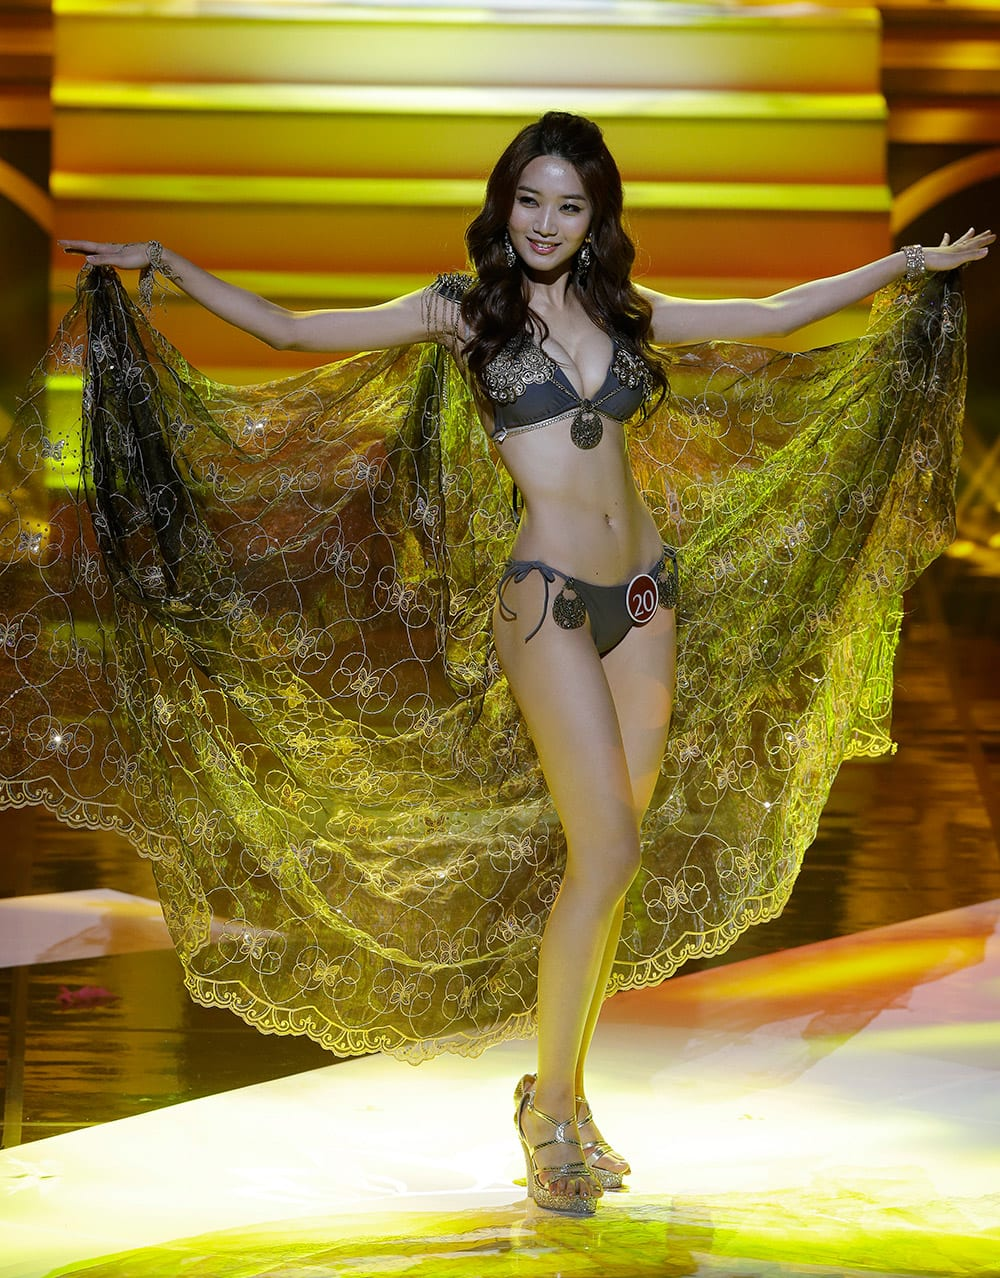 Miss Korea Lee Min-ji, 24-year-old college student, poses during the 2015 Miss Korea Contest in Seoul, South Korea. Lee will represent South Korea for this year's Miss Universe beauty pageant.